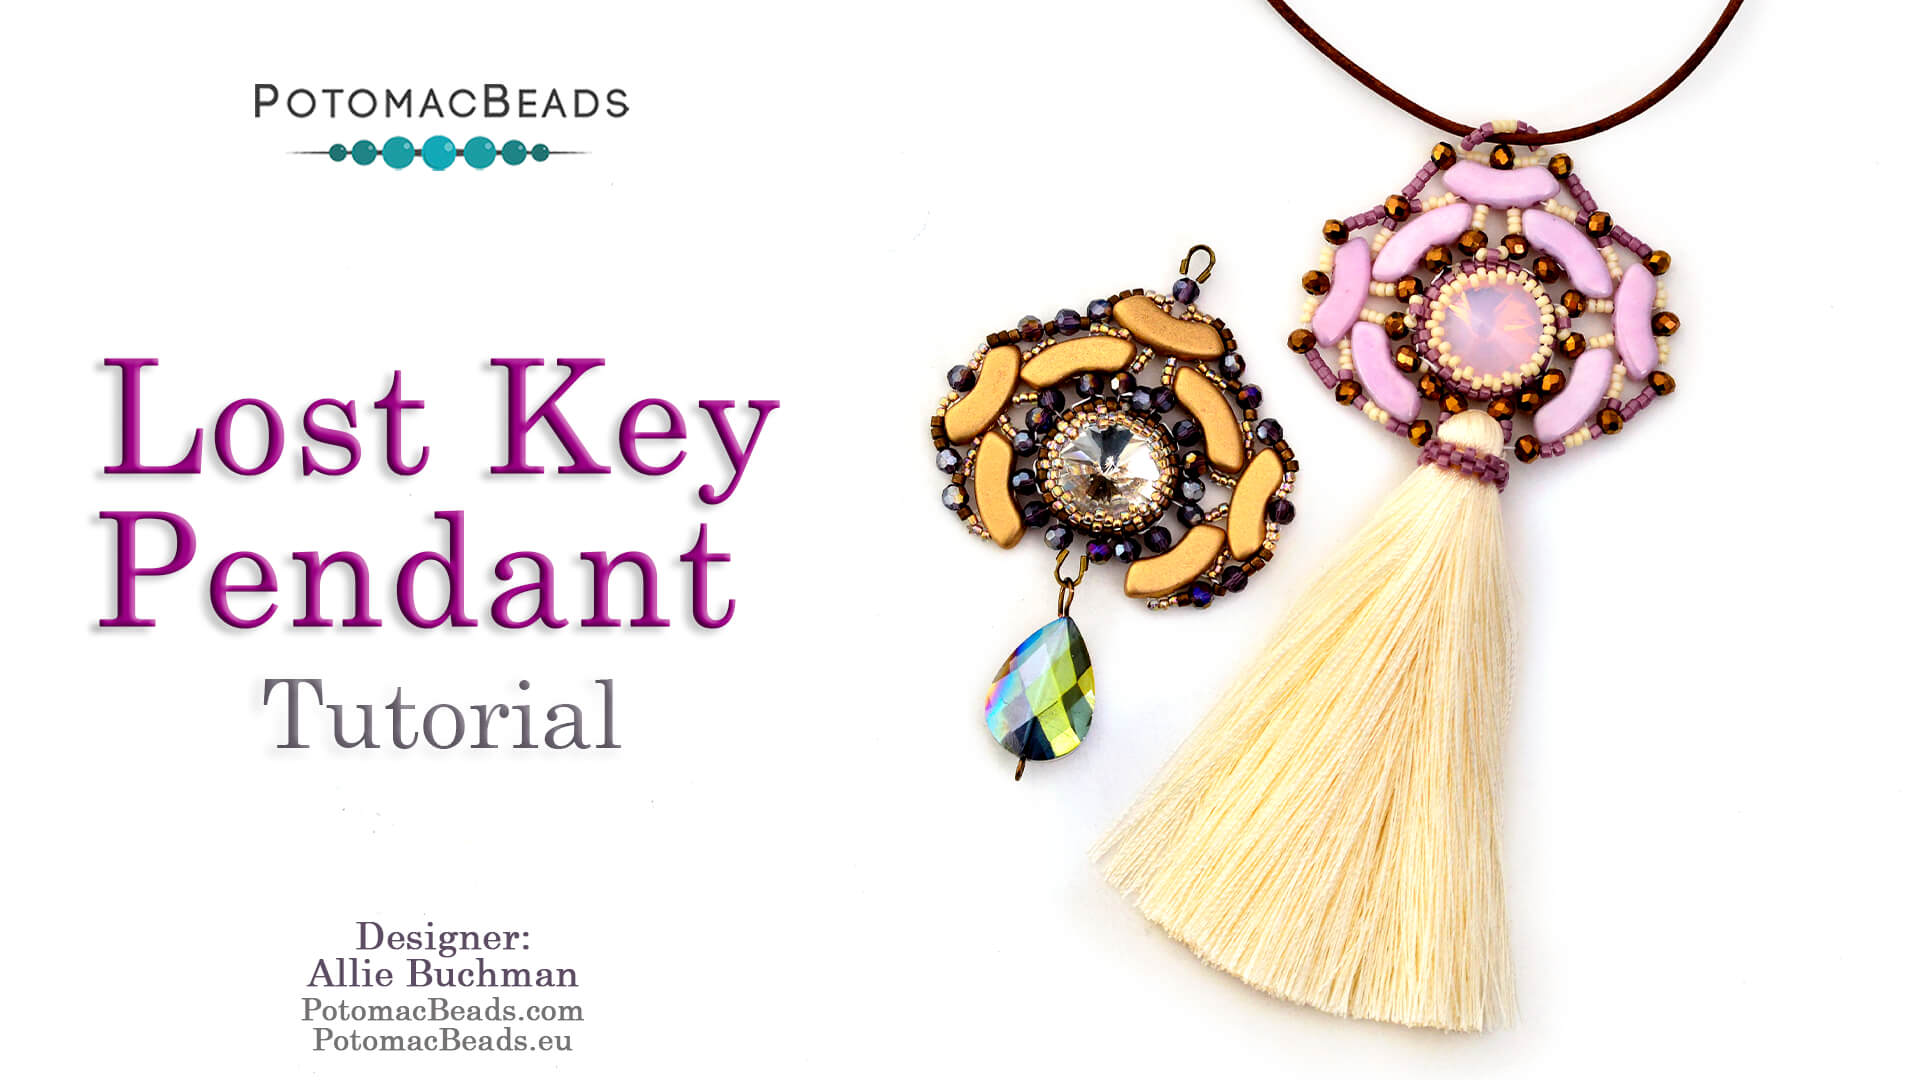 How to Bead Jewelry / Videos Sorted by Beads / QuadBow & PieDuo Bead Videos / Lost Key Pendant Tutorial